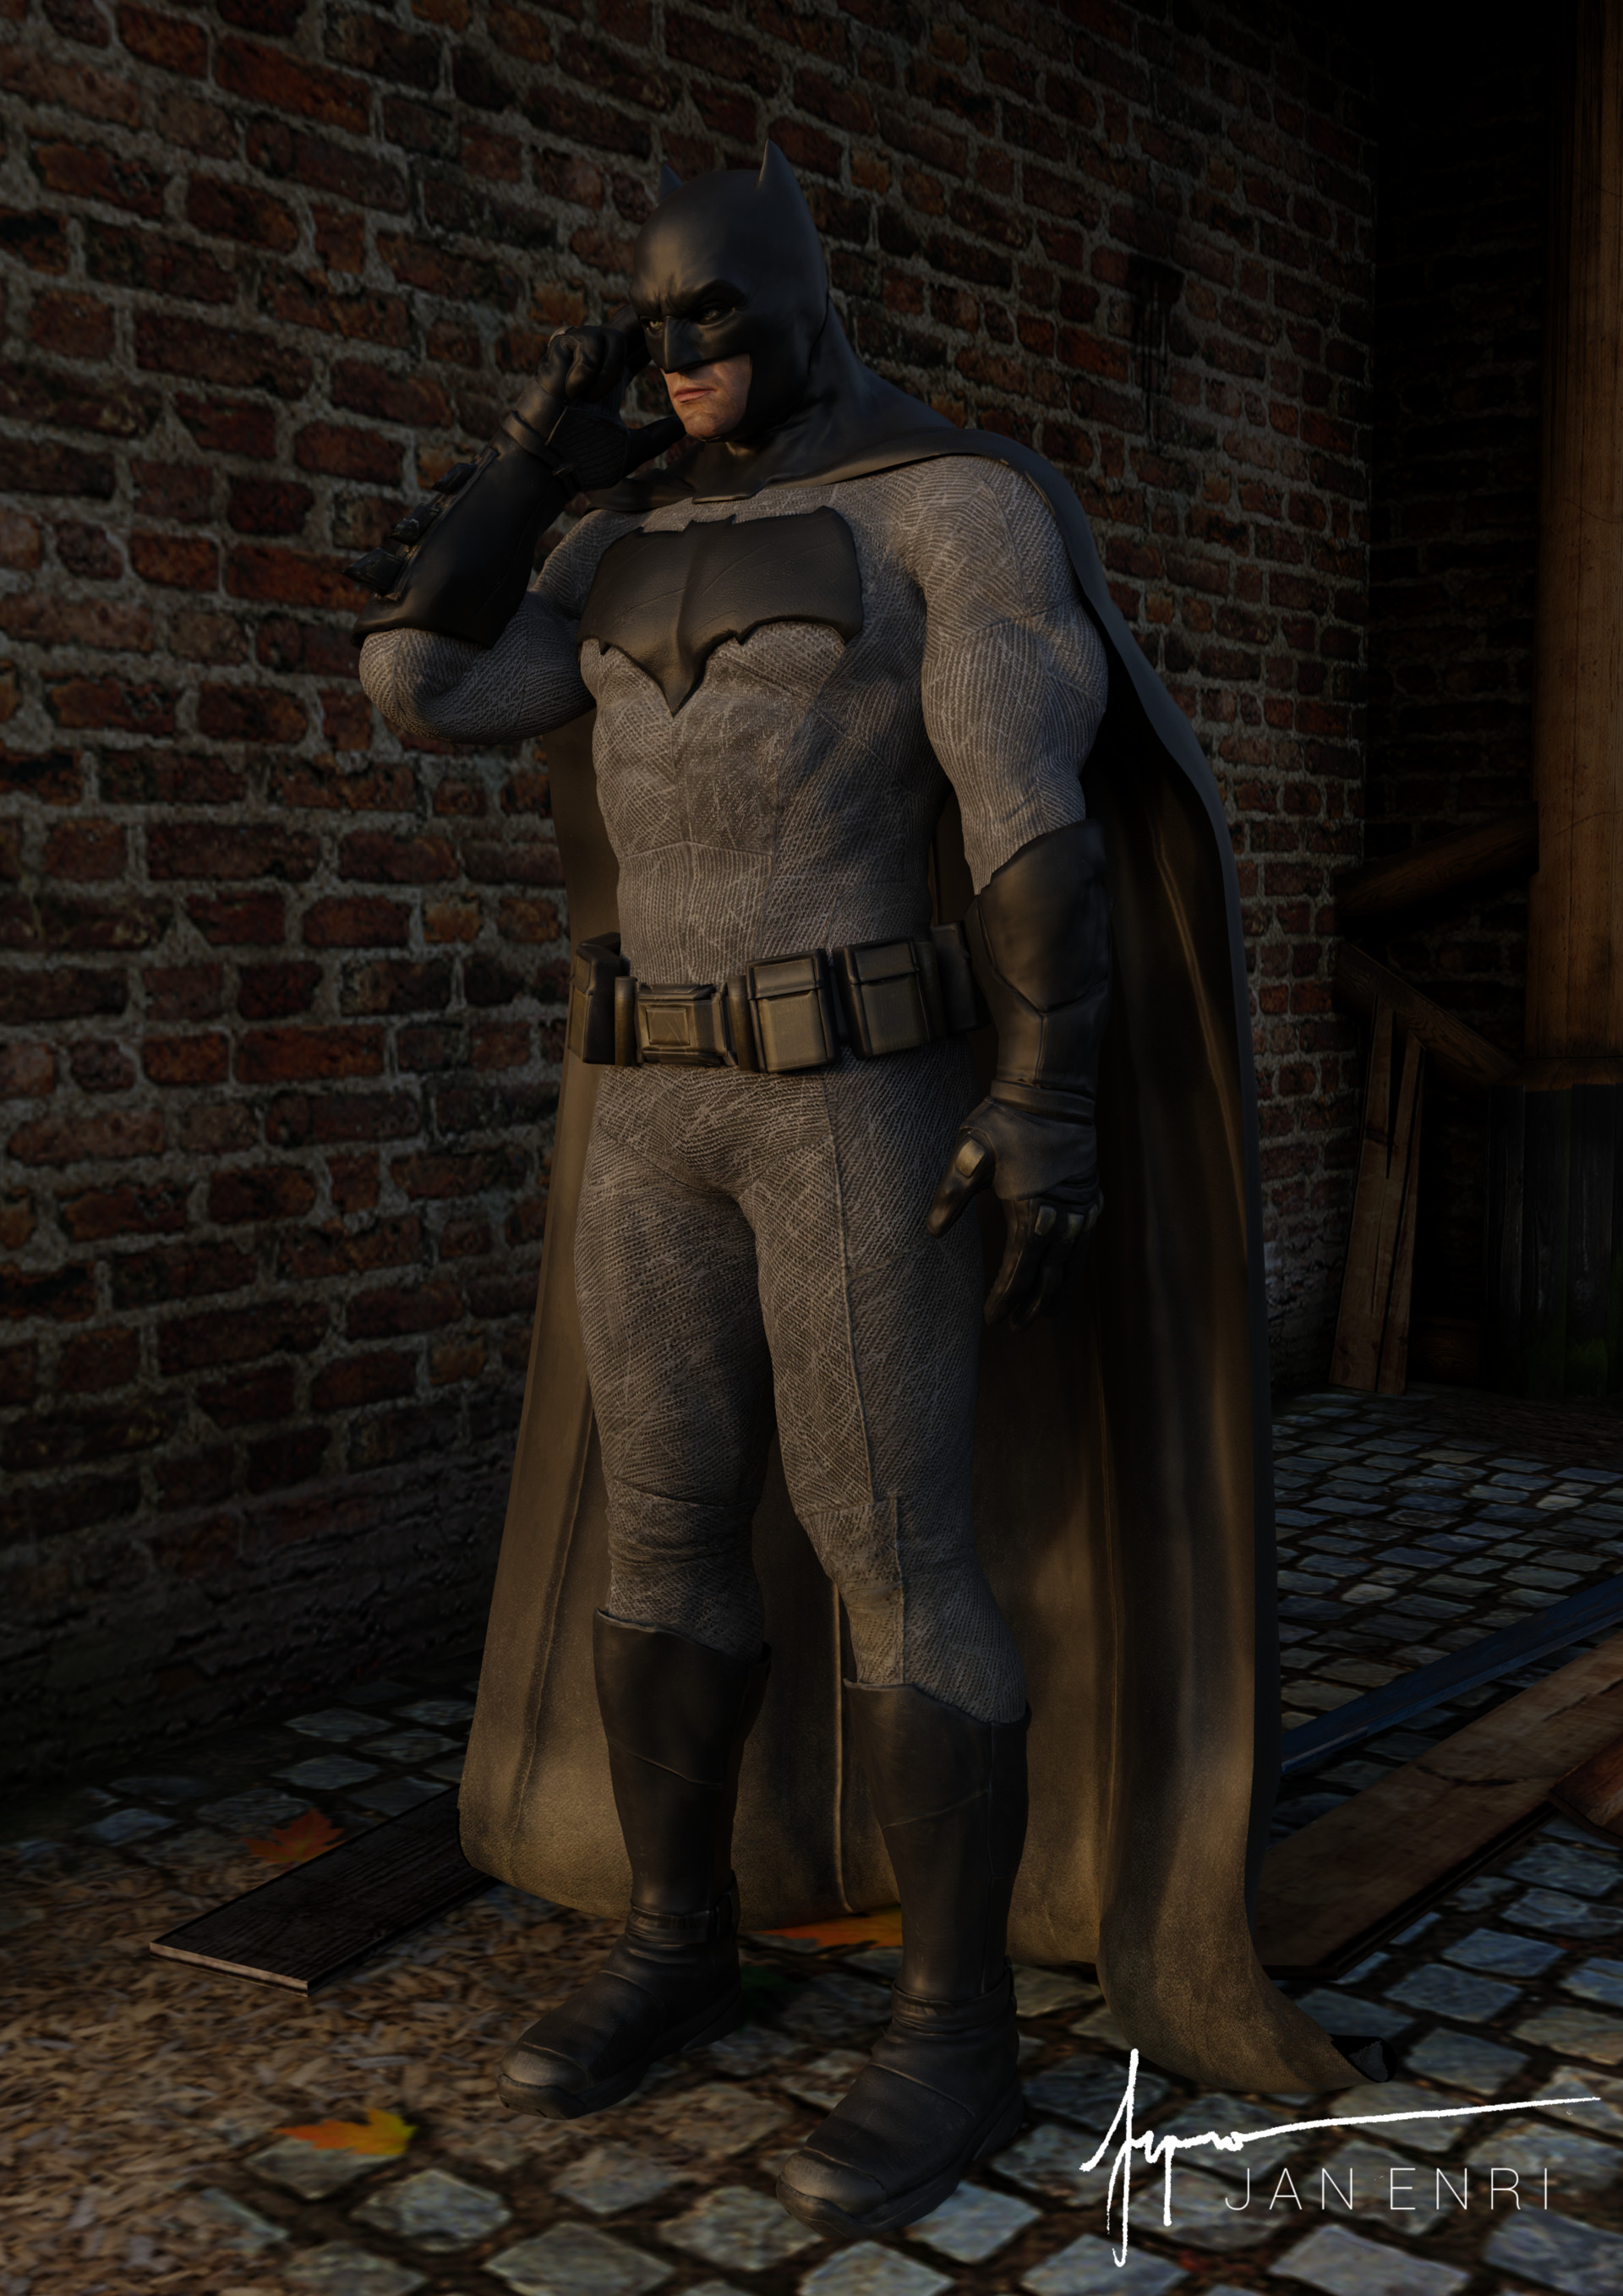 Jan enri arquero batman bvs